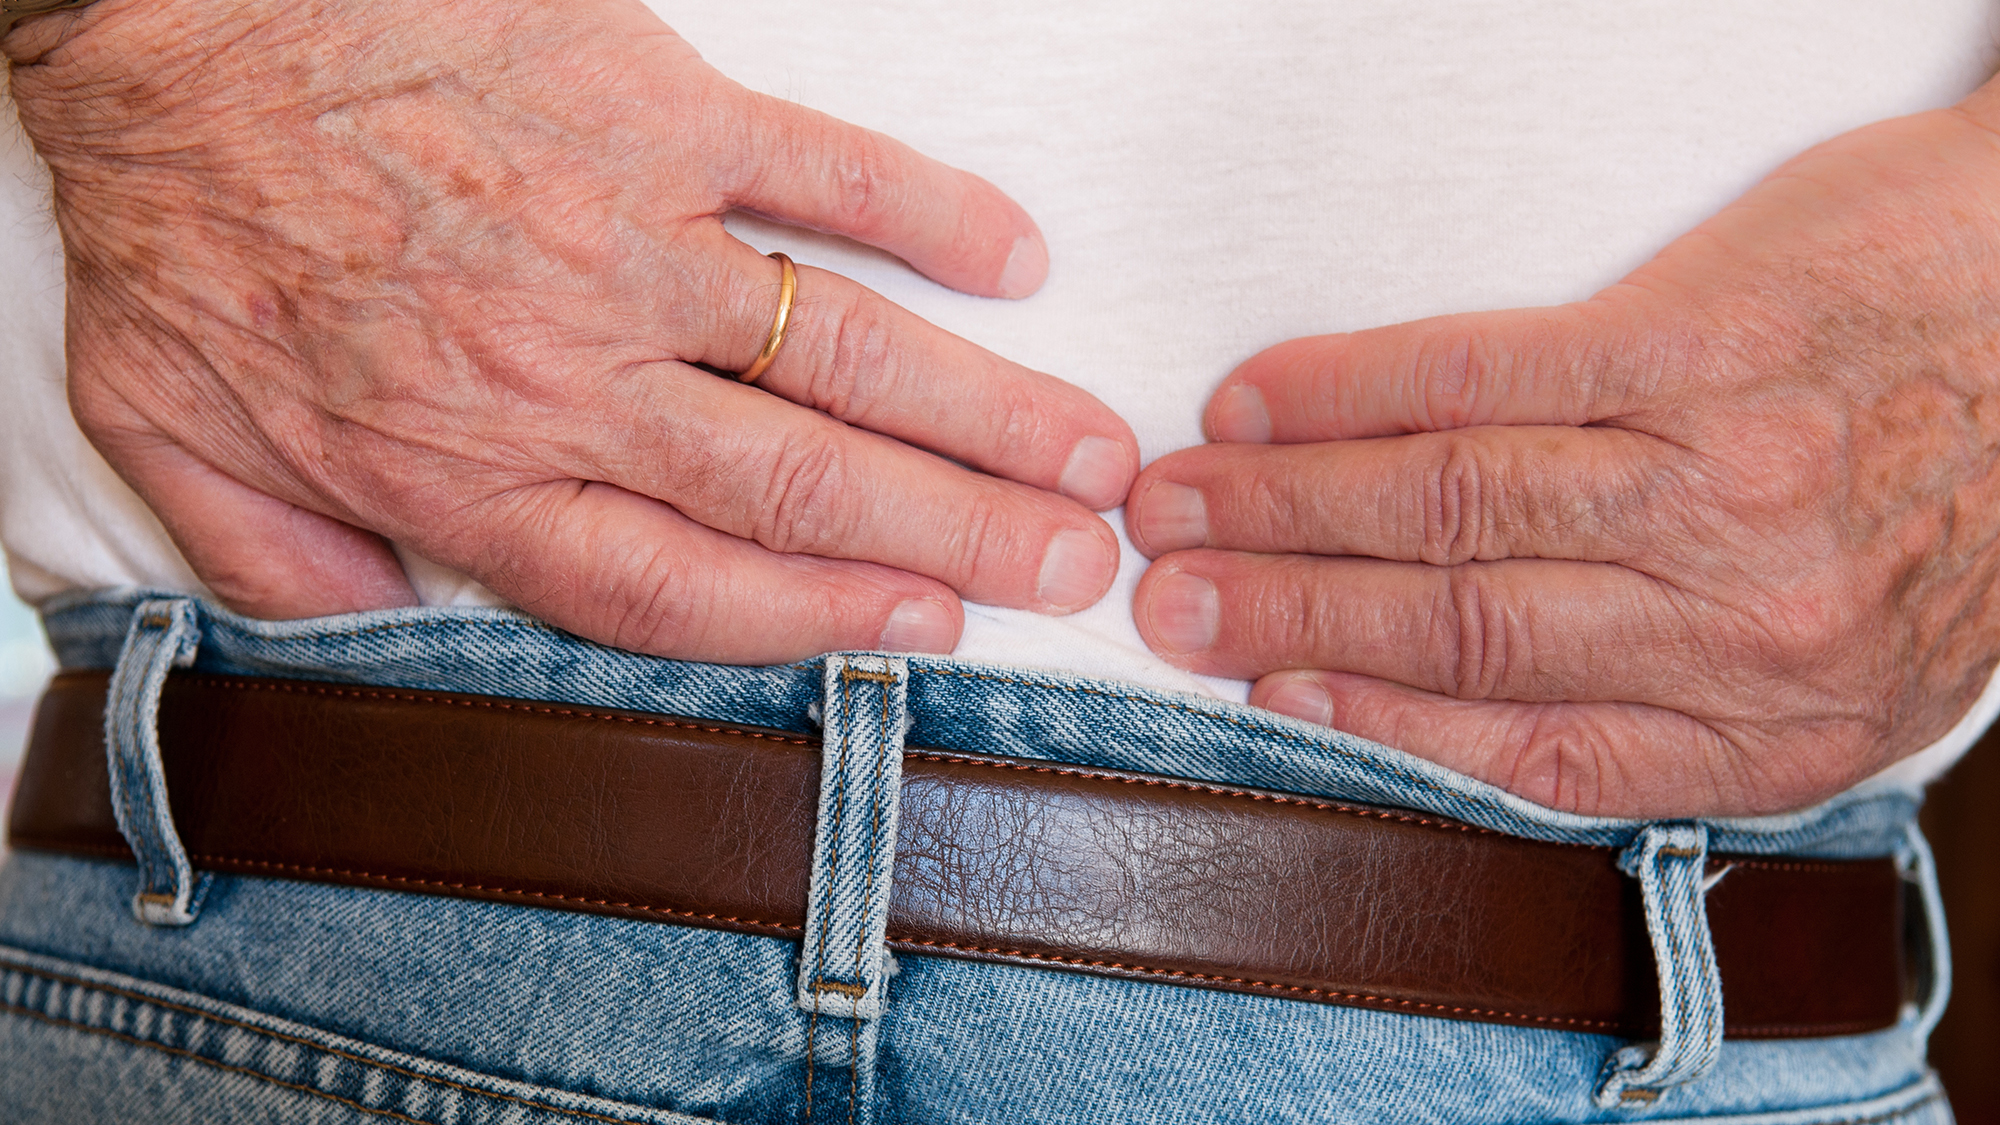 Suffering from chronic back pain? Physiotherapy may work just as well as surgery, according to study